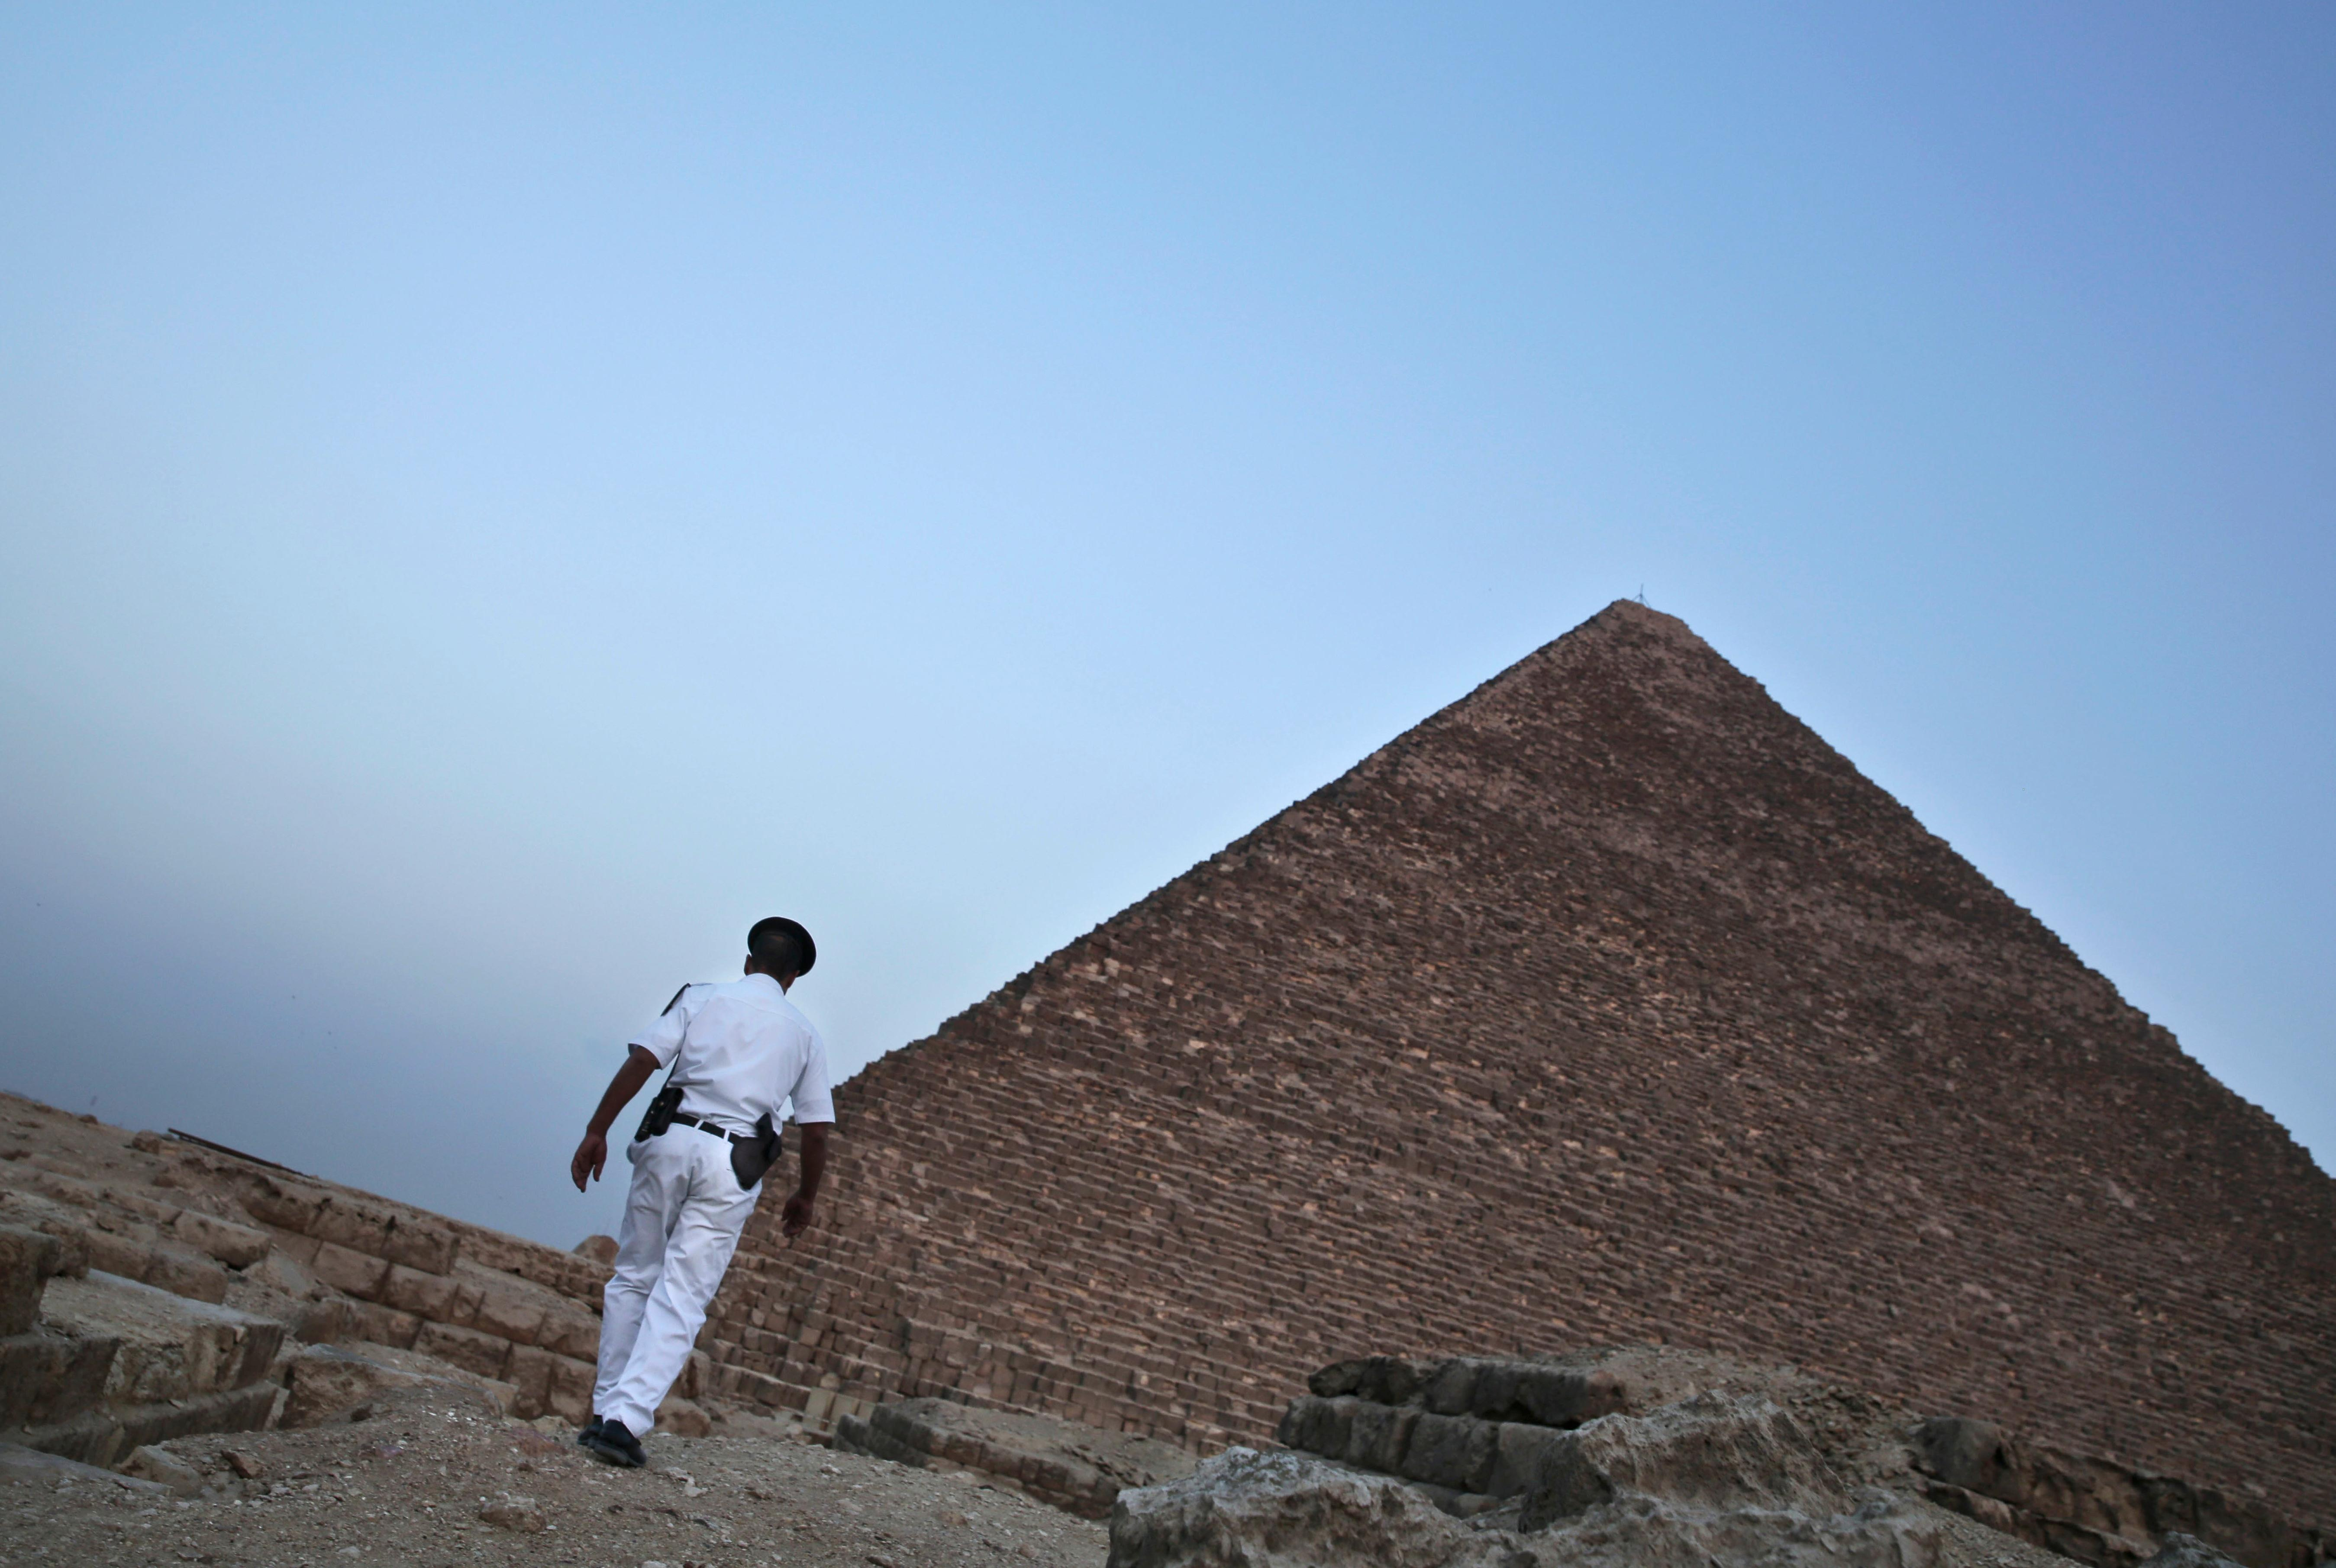 FILE - In this file photo dated Monday, Nov. 9, 2015, an Egyptian policeman walks near a pyramid in Giza, Egypt.  Egypt's Antiquities Ministry on Saturday Feb. 3, 2018, announced the discovery of a 4,400-year-old tomb near the pyramids outside Cairo. (AP Photo/Nariman El-Mofty, FILE)